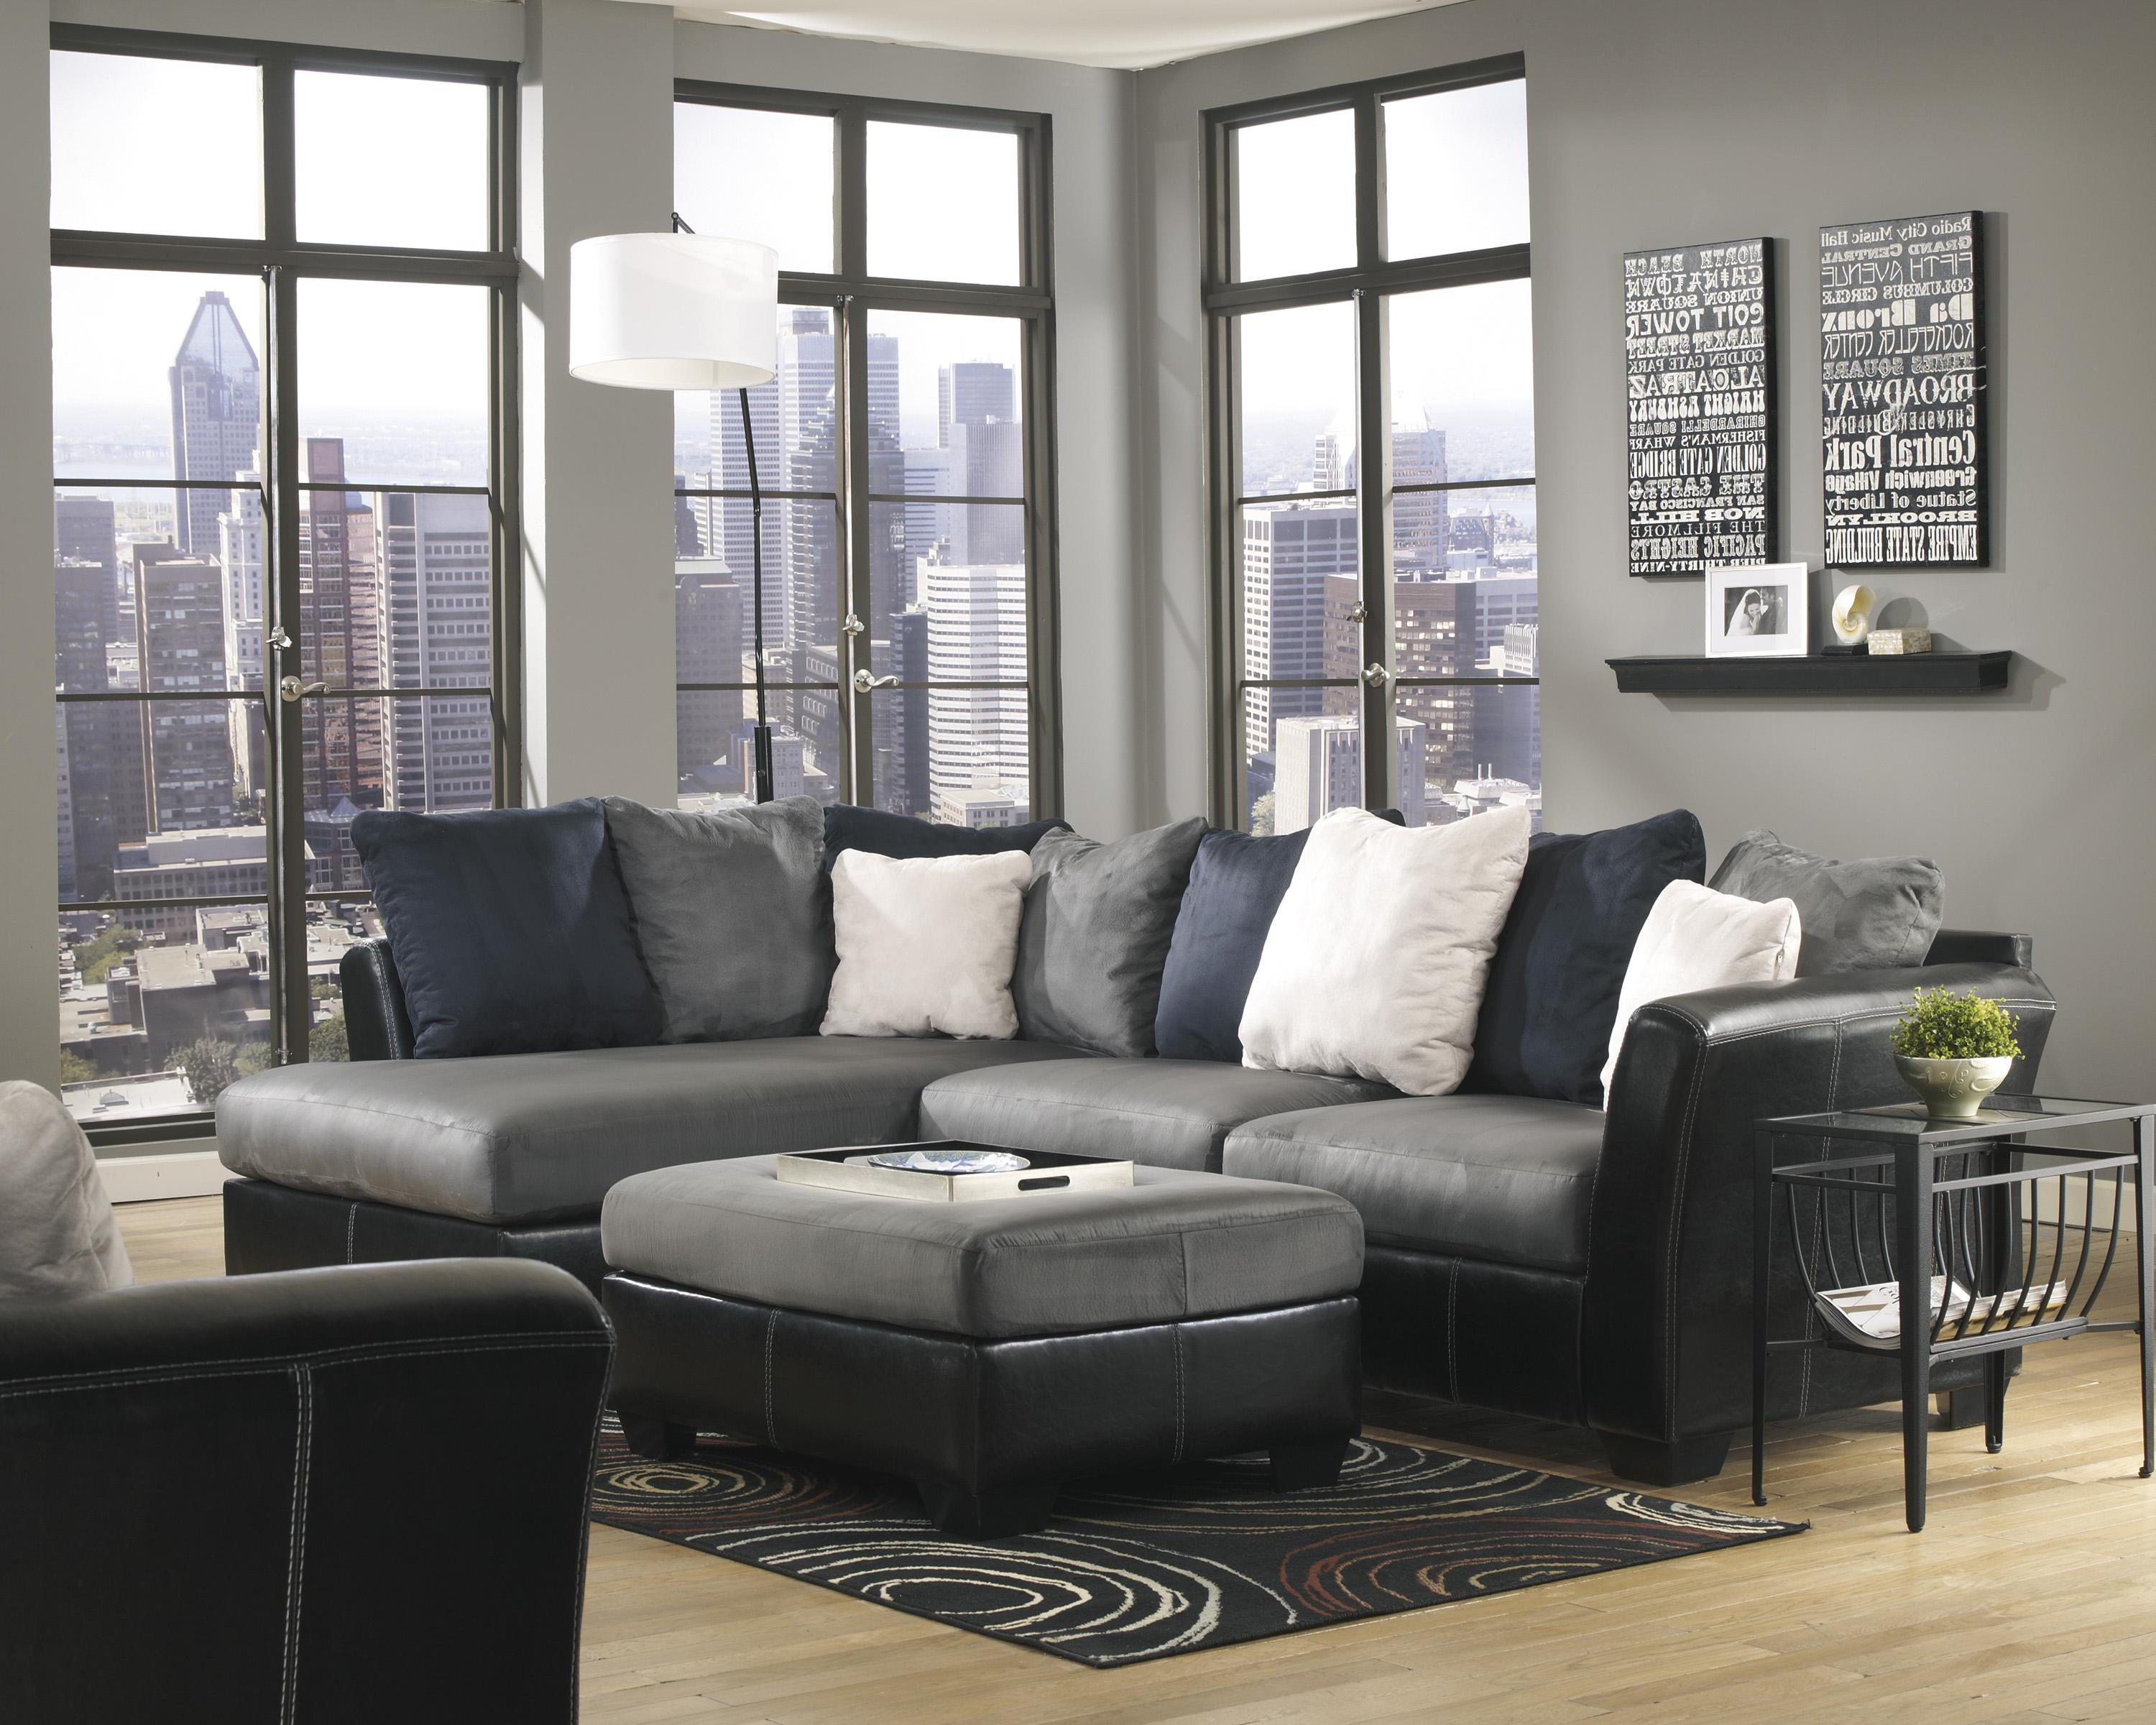 Ashley/Benchcraft Masoli - Cobblestone Stationary Living Room Group - Item Number: 14200 Living Room Group 10